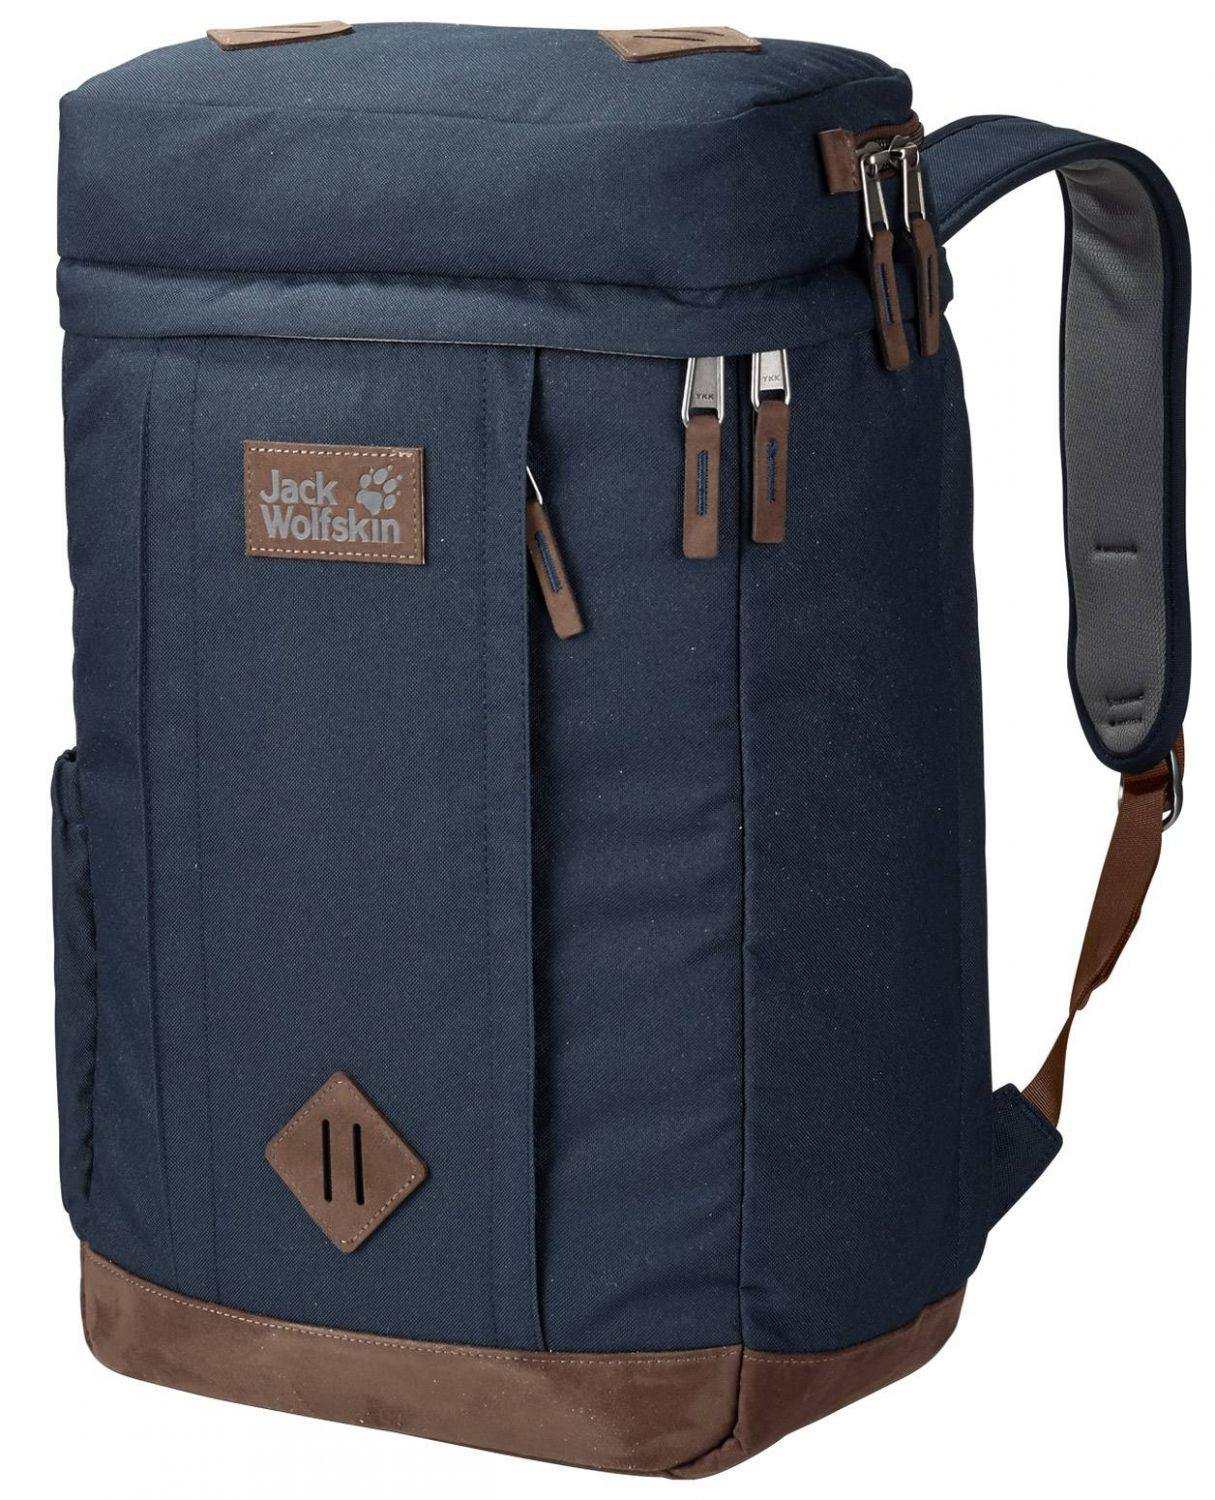 Jack Wolfskin Leicester Square Laptop Rucksack (Farbe: 1010 night blue) Sale Angebote